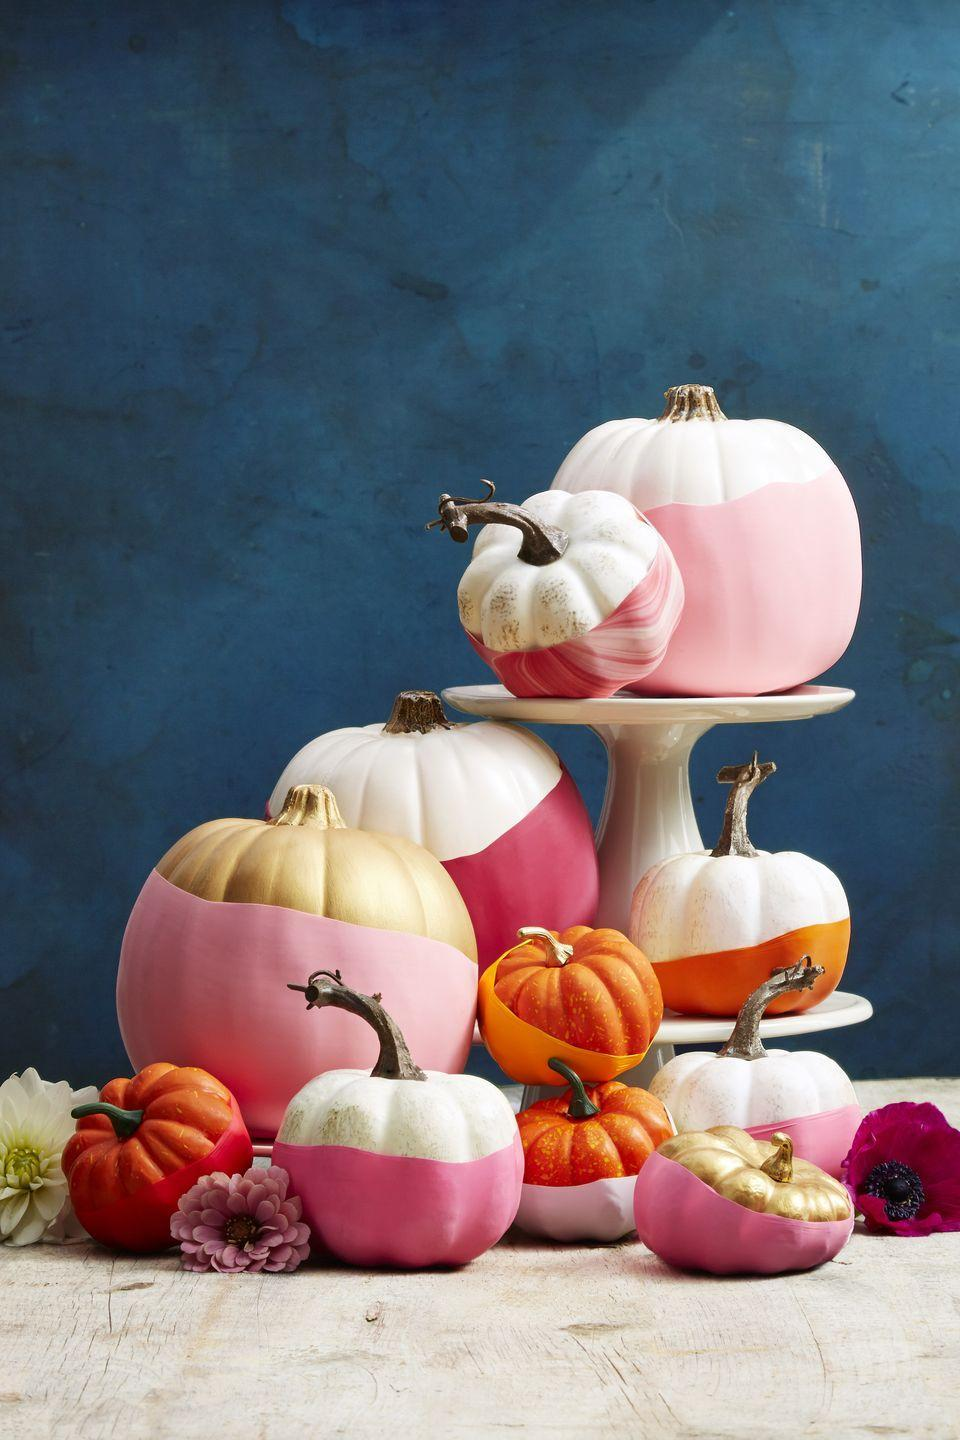 """<p>We spotted this <a href=""""http://www.papernstitchblog.com/2015/10/12/easiest-no-carve-pumpkin-idea-balloon-dipped-pumpkins-diy/"""" rel=""""nofollow noopener"""" target=""""_blank"""" data-ylk=""""slk:&quot;dipped&quot;-looking pumpkin DIY"""" class=""""link rapid-noclick-resp"""">""""dipped""""-looking pumpkin DIY</a> on Brittni Mehlhoff's blog, <a href=""""http://www.papernstitchblog.com/"""" rel=""""nofollow noopener"""" target=""""_blank"""" data-ylk=""""slk:Paper & Stitch"""" class=""""link rapid-noclick-resp"""">Paper & Stitch</a>, and put it on our cover. For a pop of color, snip the ends off opaque balloons (11 inches for mini pumpkins, larger for the big guys) and stretch around the bases. </p><p><a class=""""link rapid-noclick-resp"""" href=""""https://www.amazon.com/Balloons-Assorted-Birthday-Decoration-Accessory/dp/B07MKWX51X/?tag=syn-yahoo-20&ascsubtag=%5Bartid%7C10055.g.1714%5Bsrc%7Cyahoo-us"""" rel=""""nofollow noopener"""" target=""""_blank"""" data-ylk=""""slk:SHOP BALLOONS"""">SHOP BALLOONS</a><br></p>"""